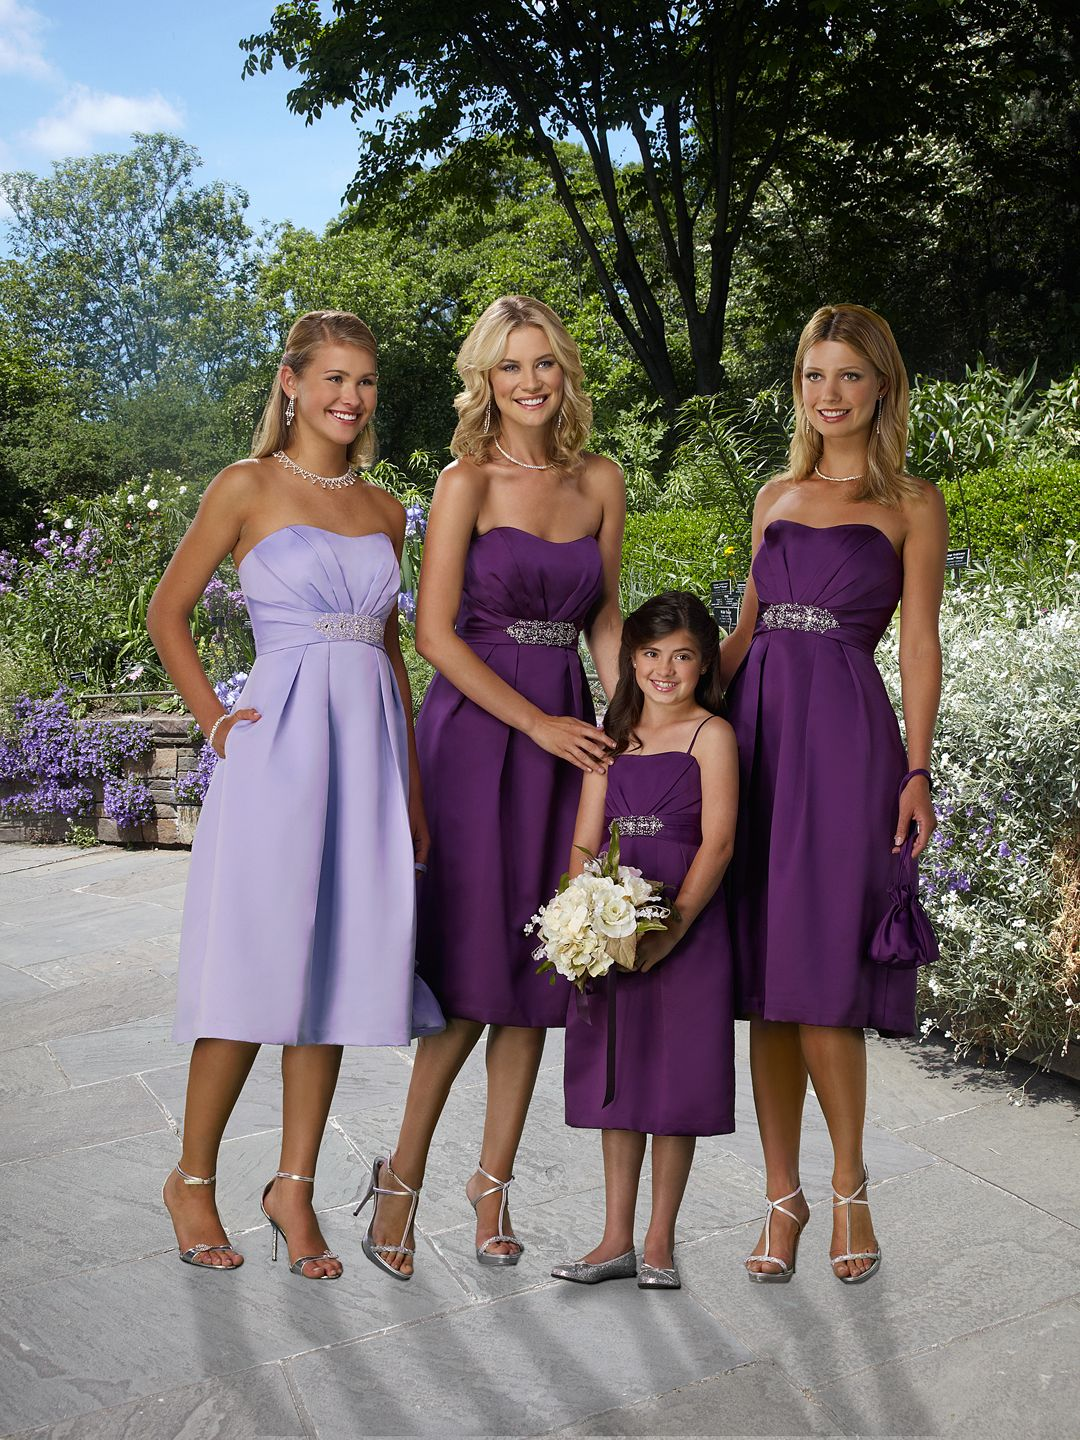 78 Best images about Bridesmaid dresses for Racquel&lt3 on Pinterest ...